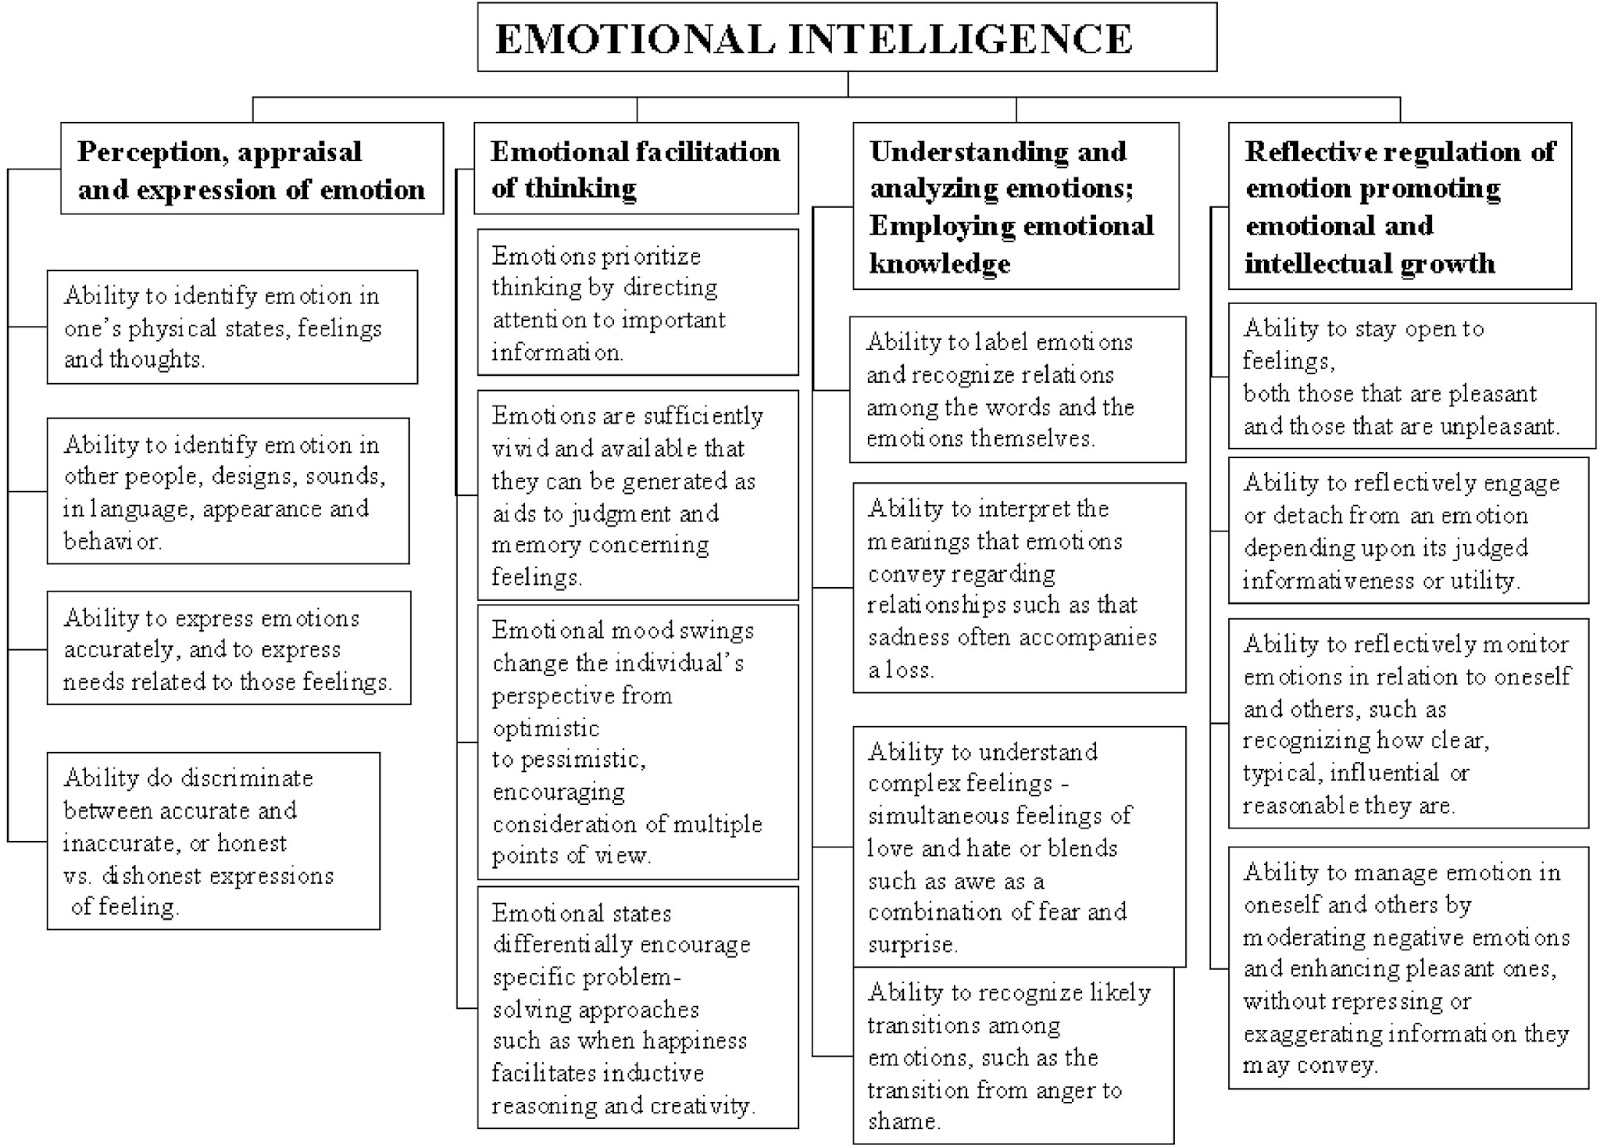 five characteristics of emotional intelligence Start studying emotional intelligence learn vocabulary, terms, and more with flashcards, games, and other study tools.